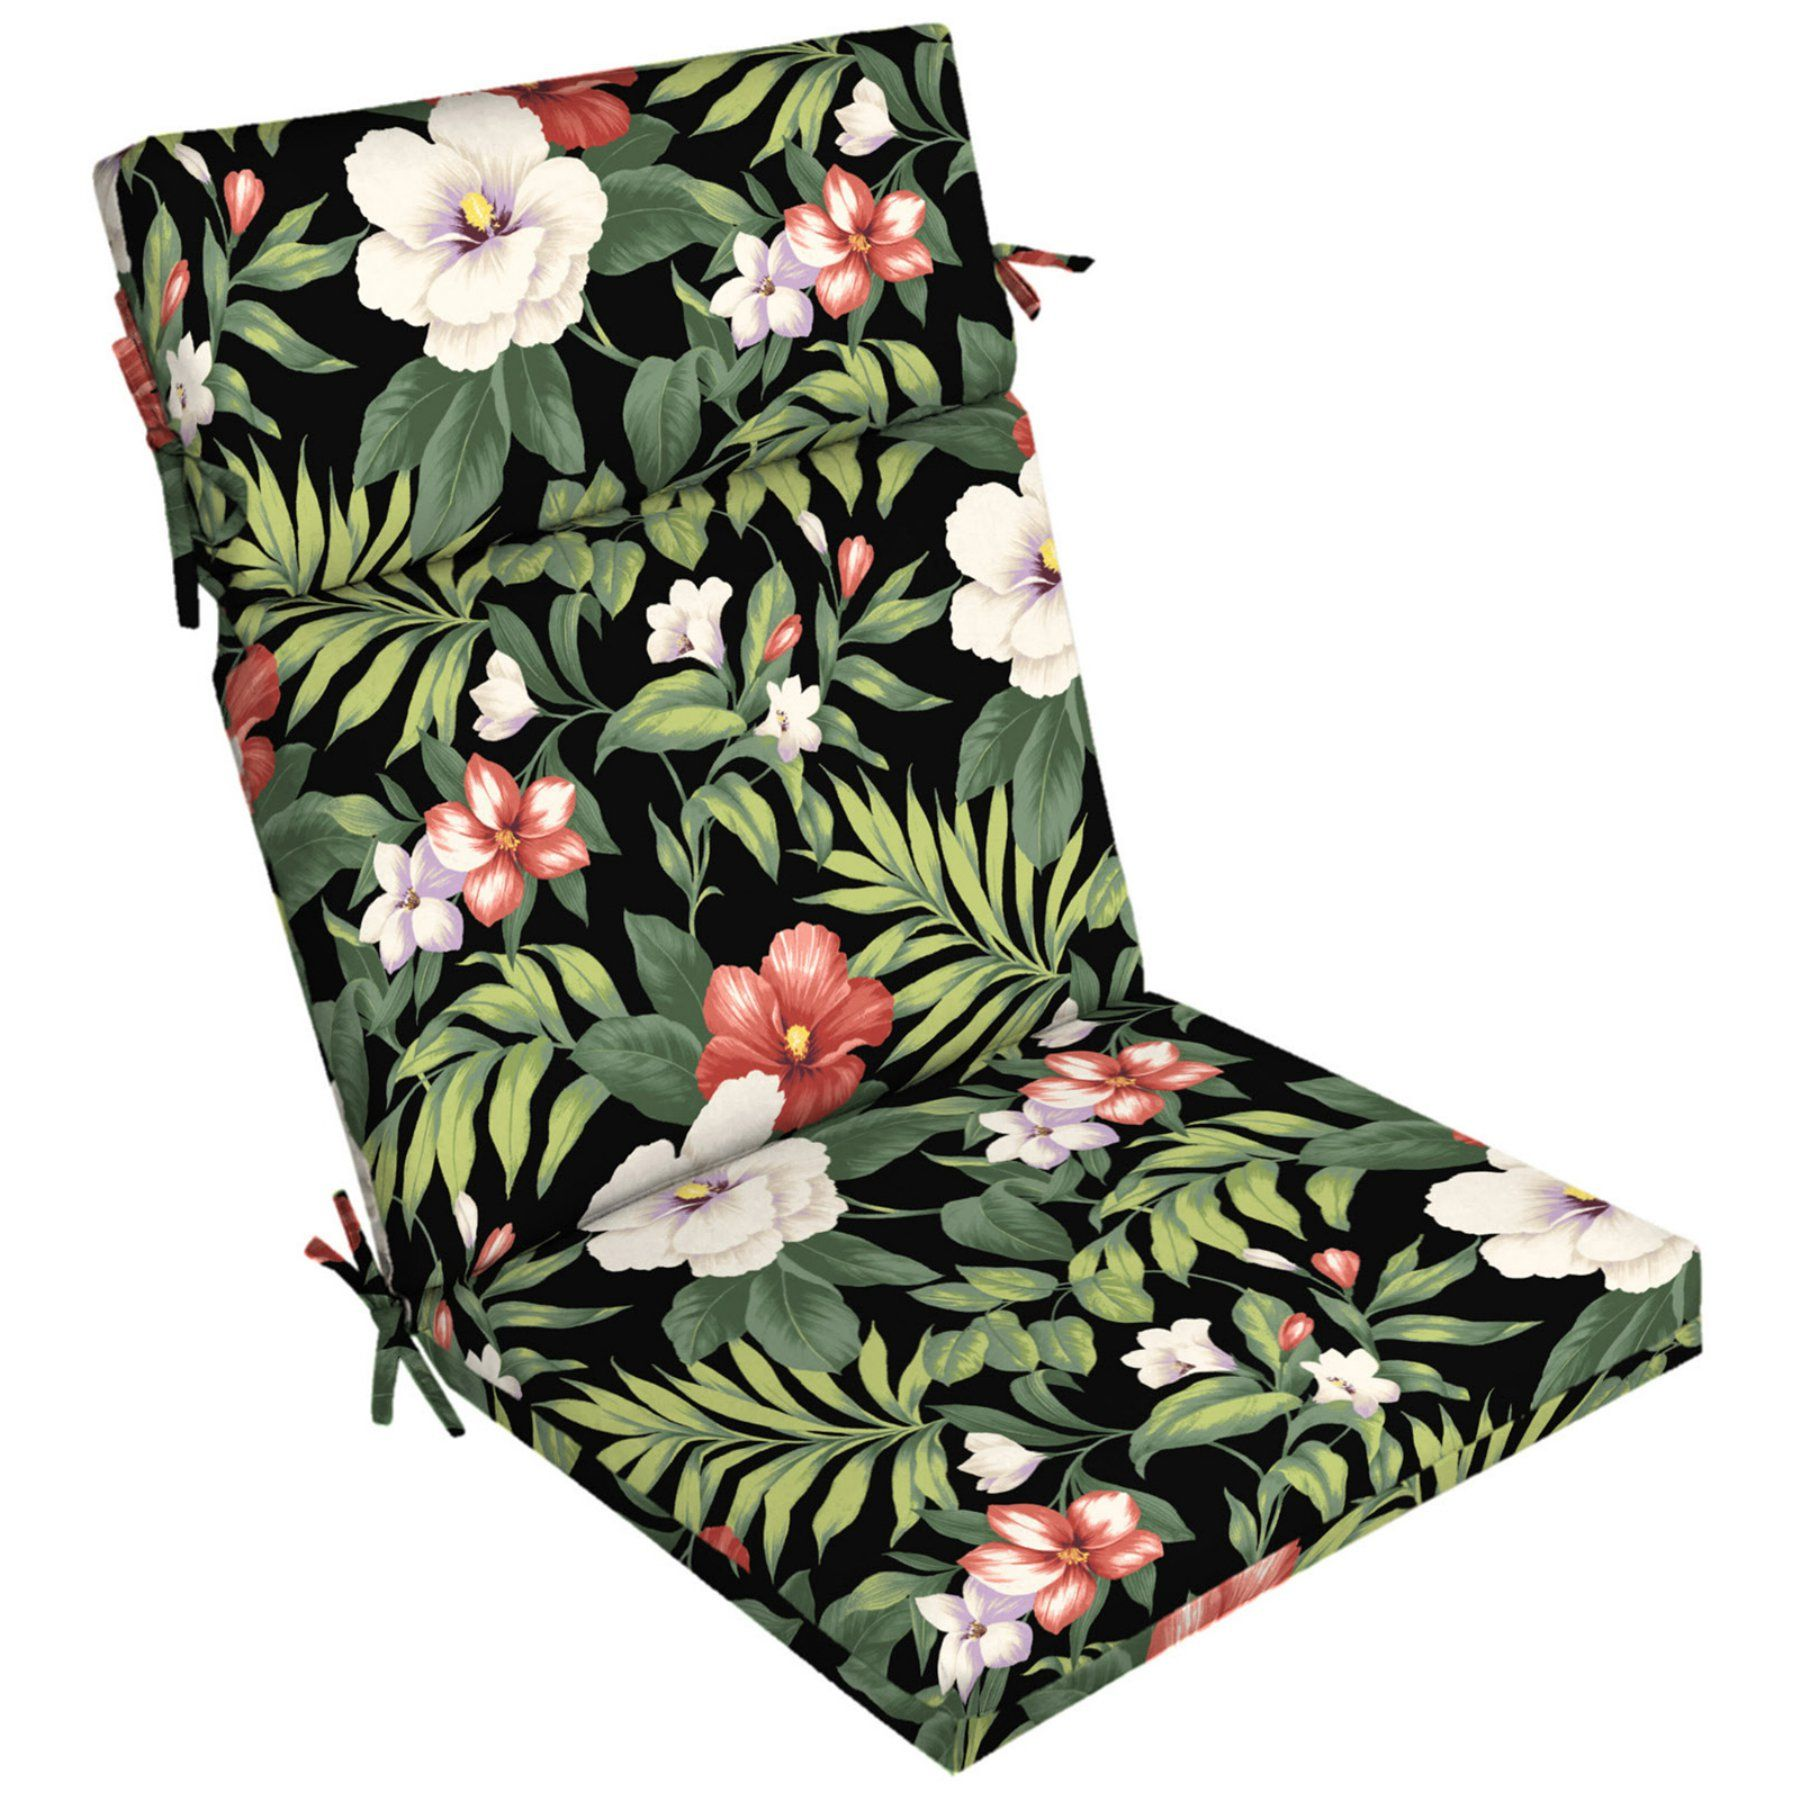 Luxury Better Homes and Gardens Cushions